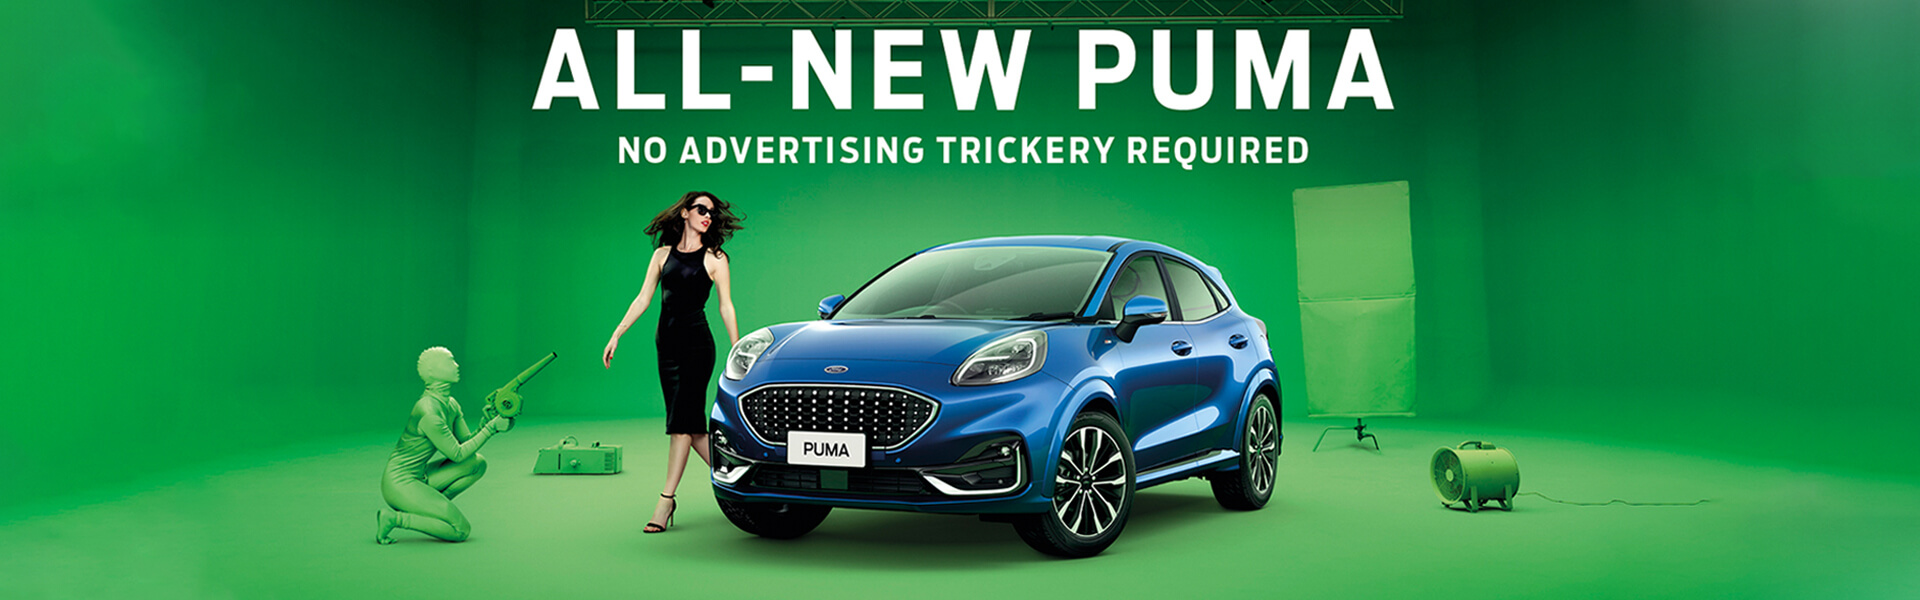 The all-new Ford Puma. No advertising trickery required.